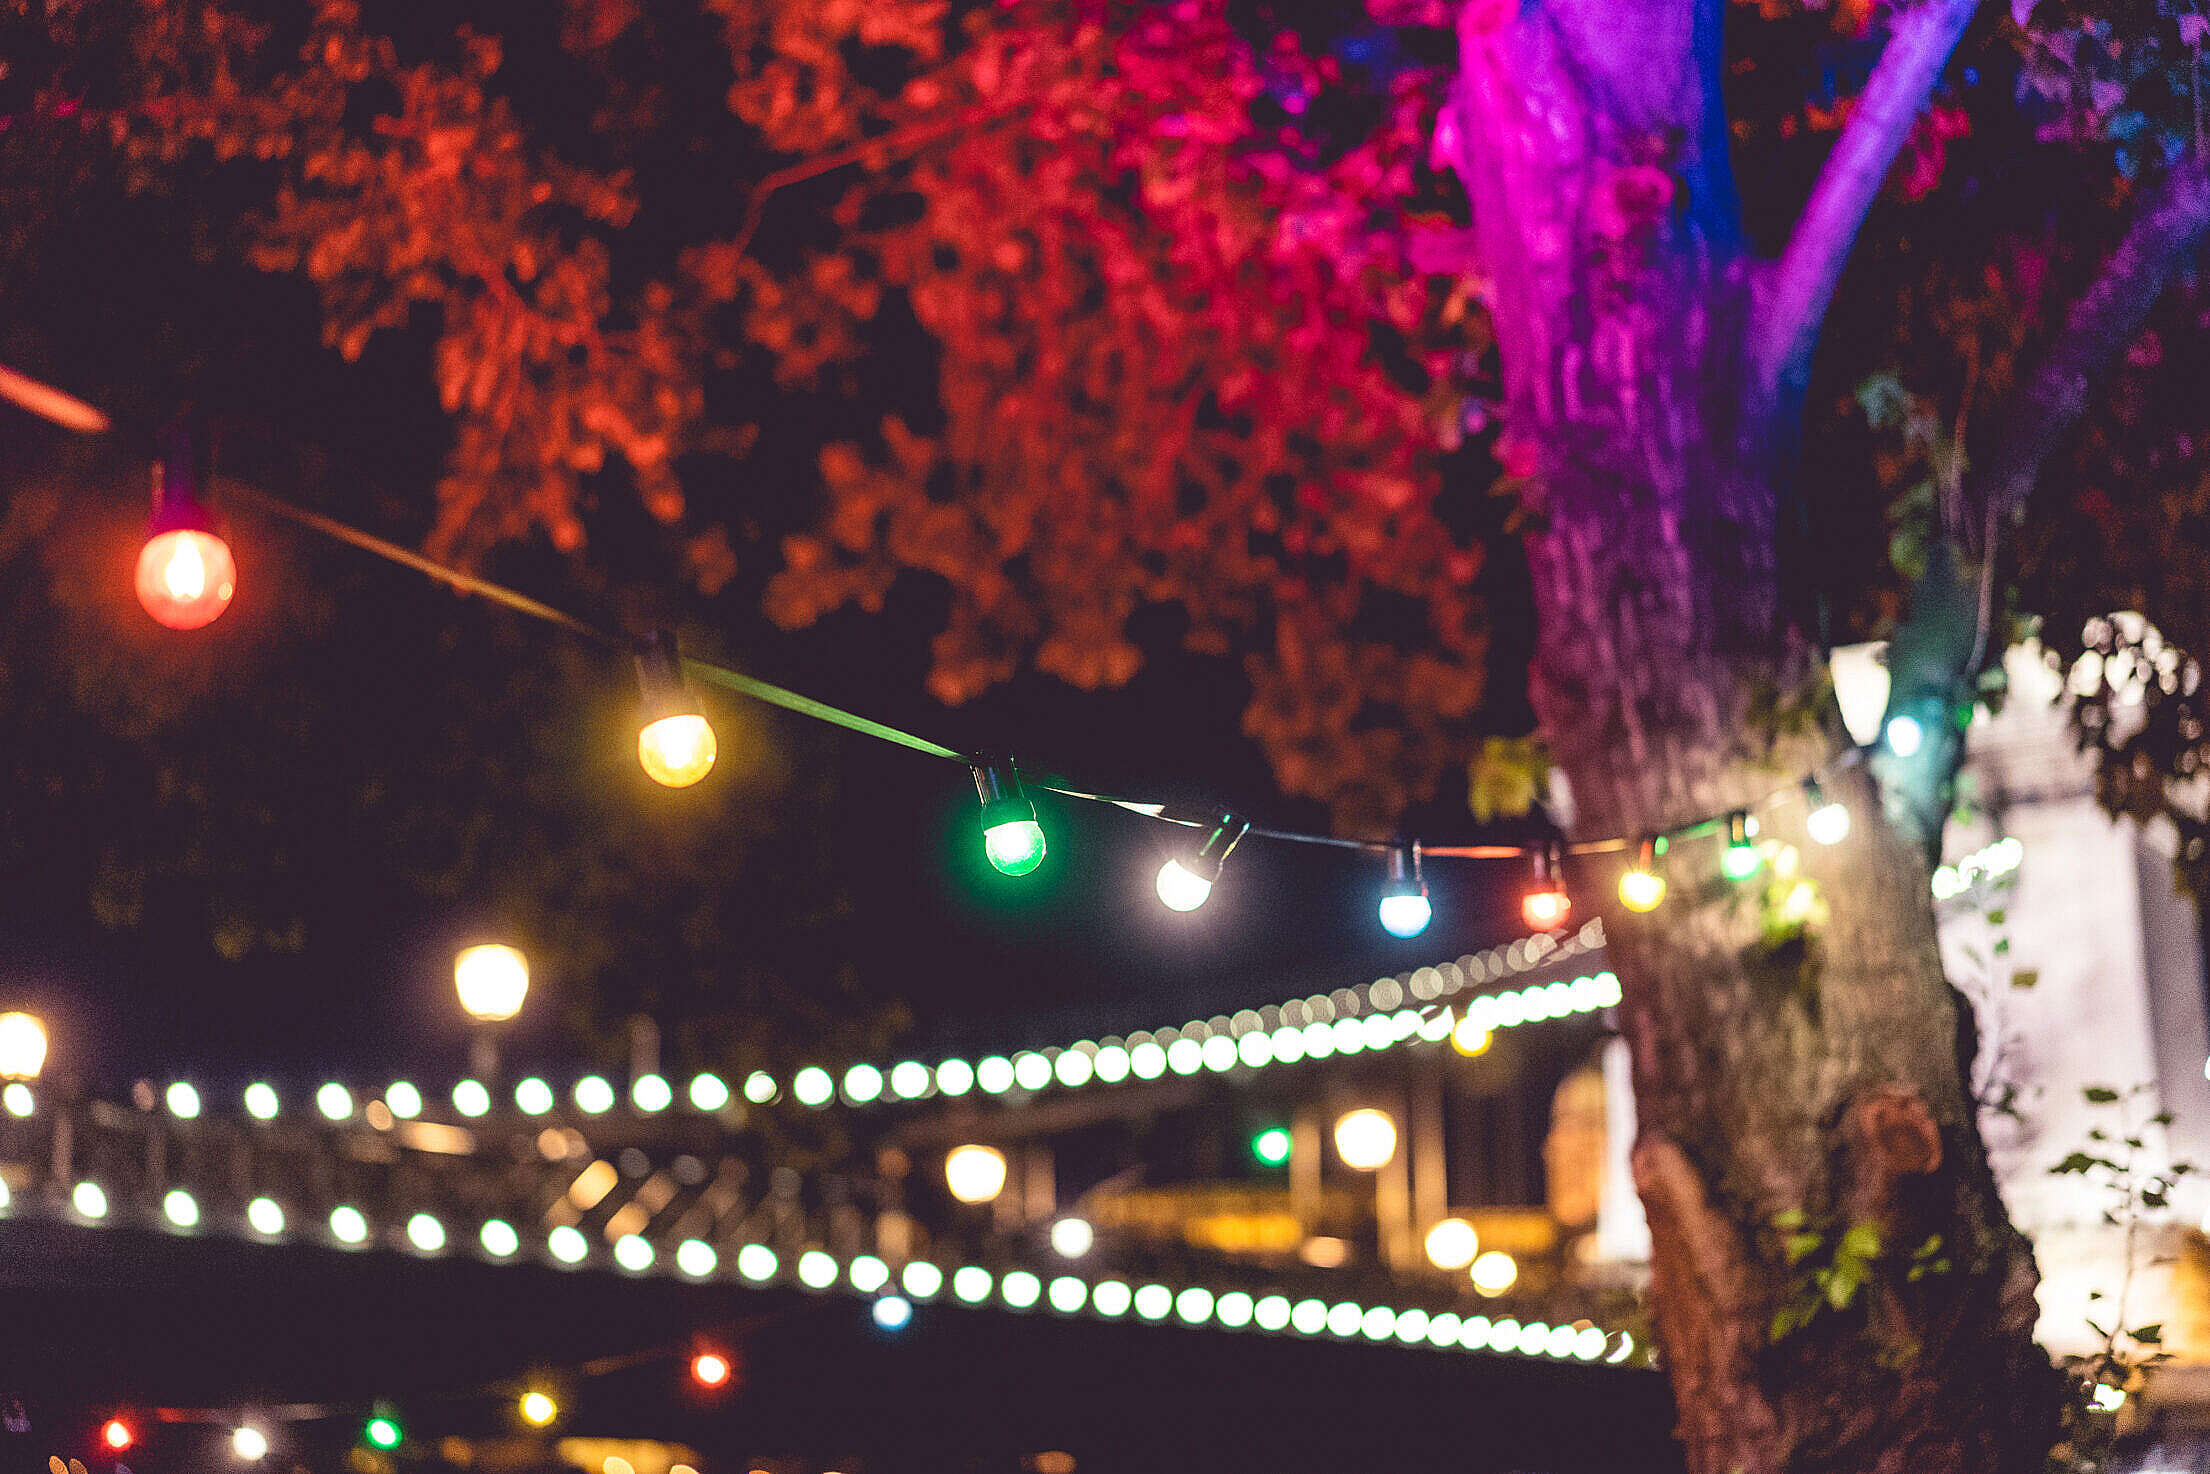 Colorful Lights on Night Garden Party Free Stock Photo